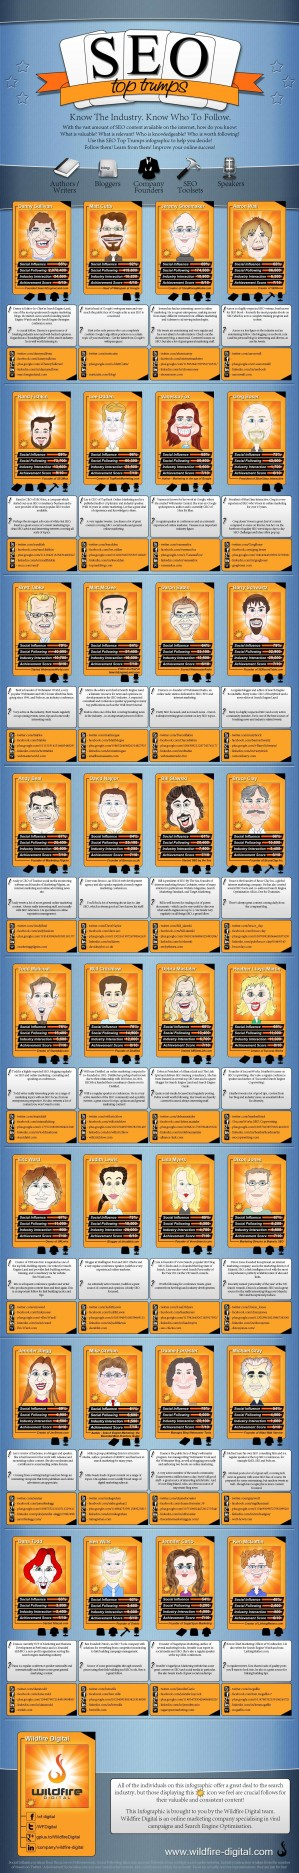 SEO Top Trumps Infographic